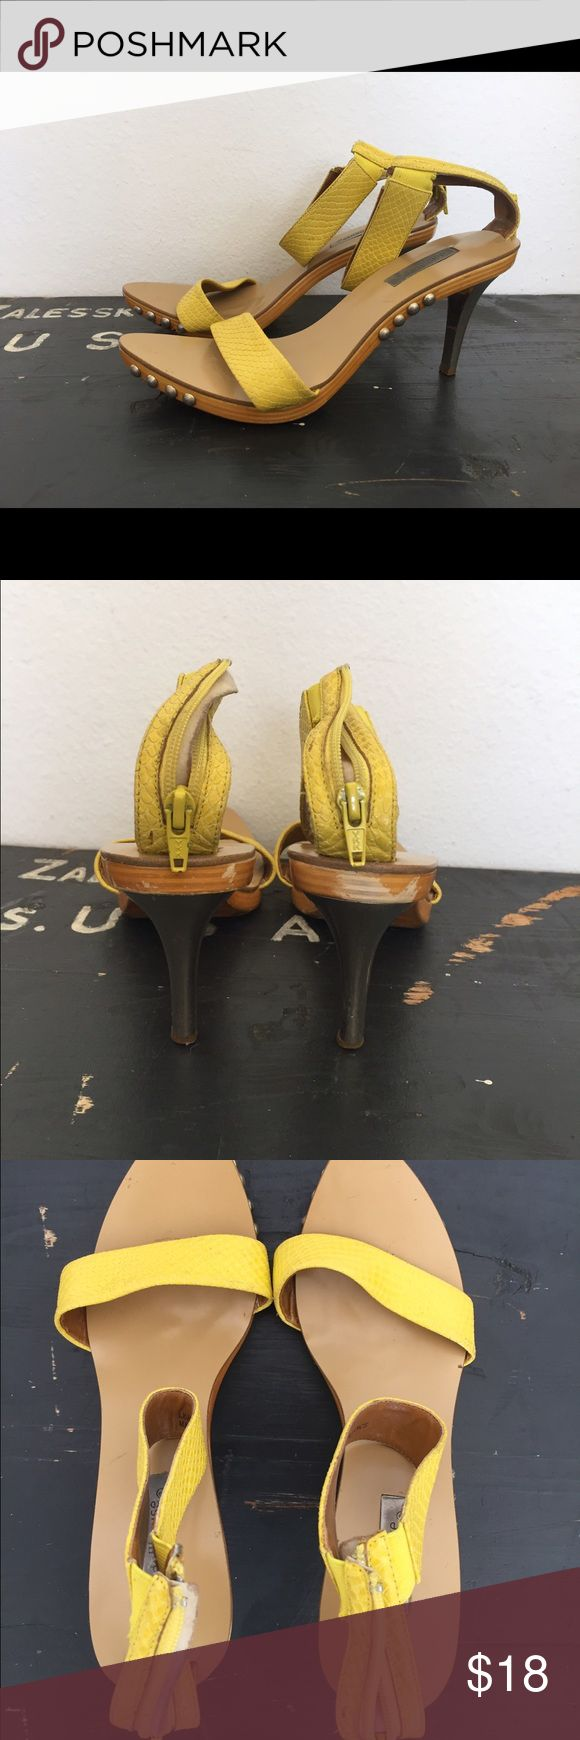 Yellow strappy heeled sandals from Dollhouse She is s beauty! Yellow straps sandals with debossed snakeprint on leather. Zip up closure, wooden outsole. 3.5 in metal heel. She is s stunner and perfect for nights out and parties. Dollhouse Shoes Heels